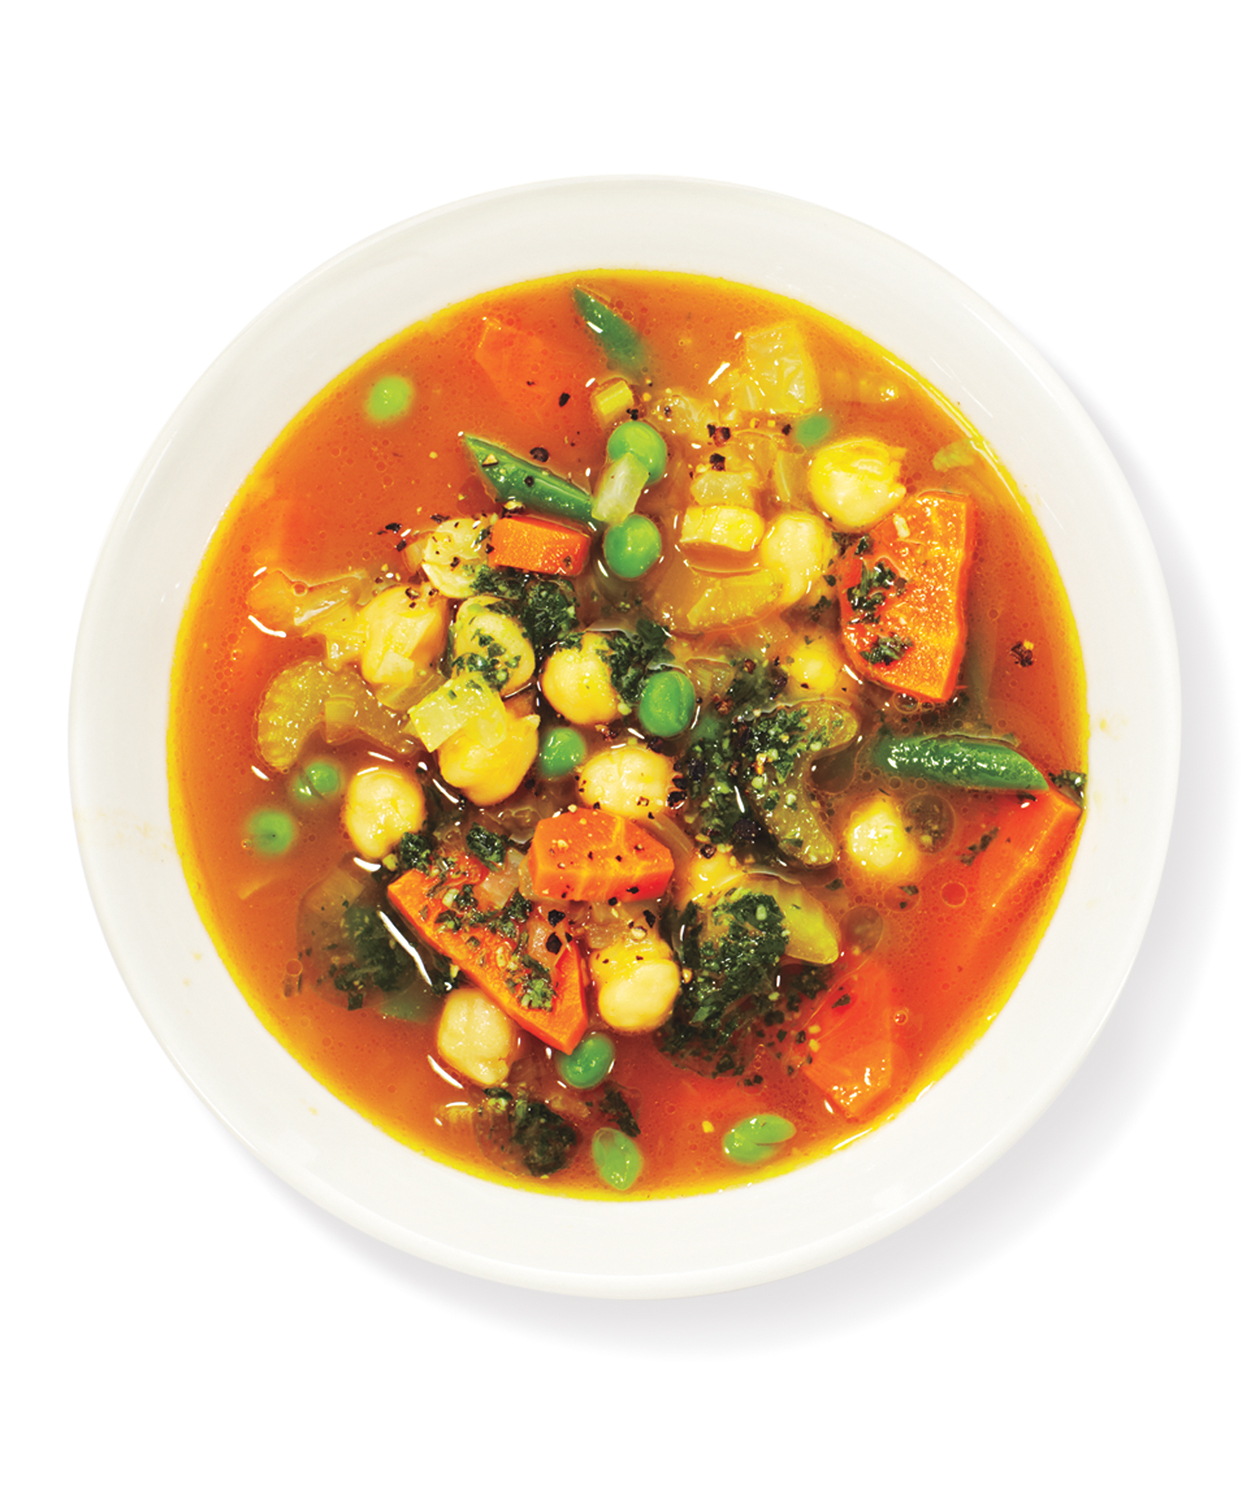 Chickpea, Vegetable, and Pesto Soup